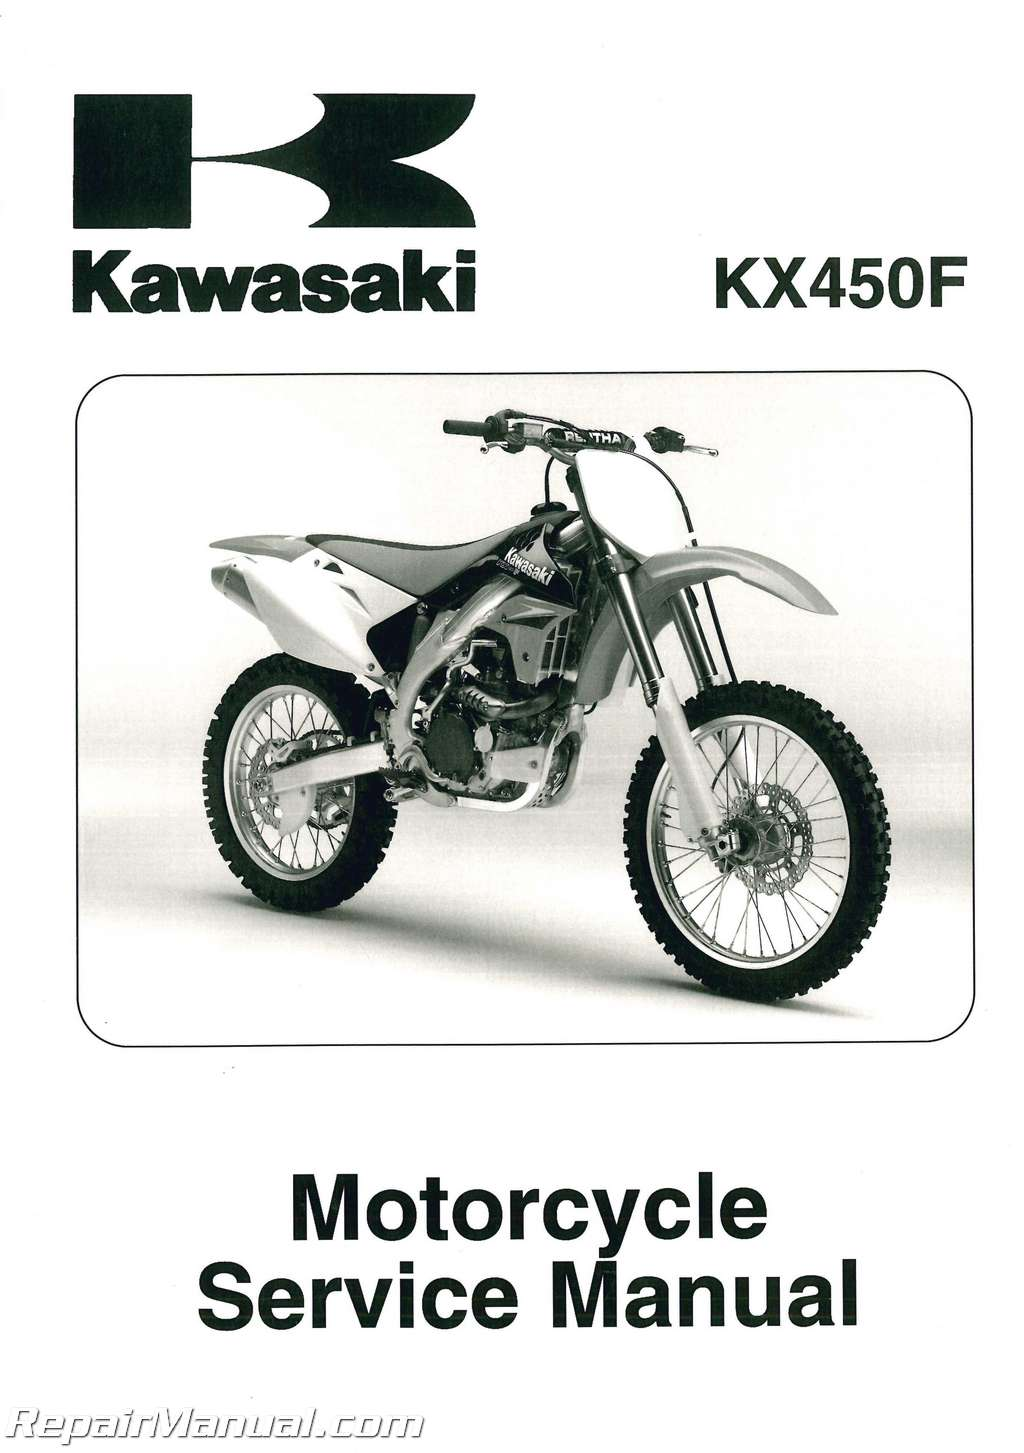 2006 kawasaki kx450f service manual rh repairmanual com 2013 kx450f service manual download kx450f service manual 2017